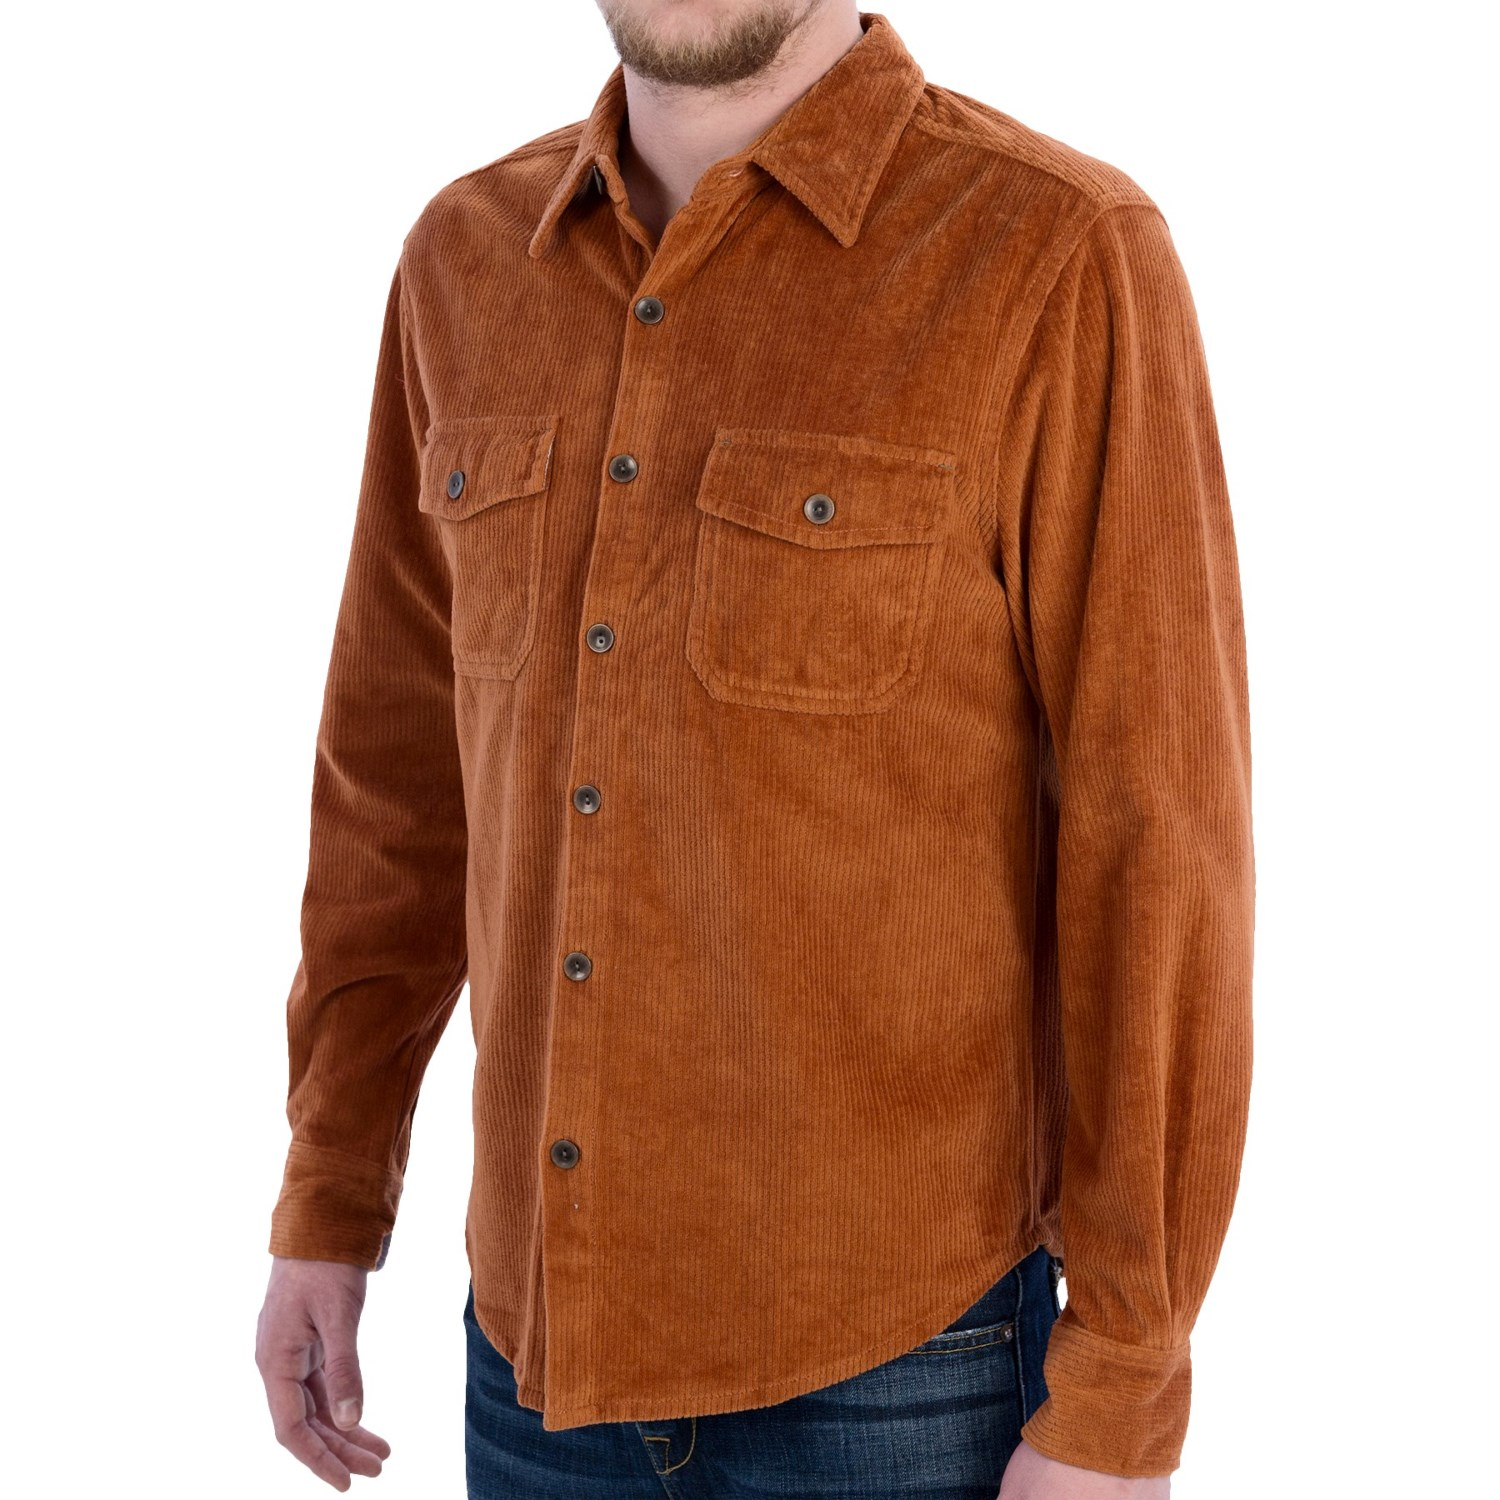 Free shipping BOTH ways on corduroy shirts for men, from our vast selection of styles. Fast delivery, and 24/7/ real-person service with a smile. Click or call